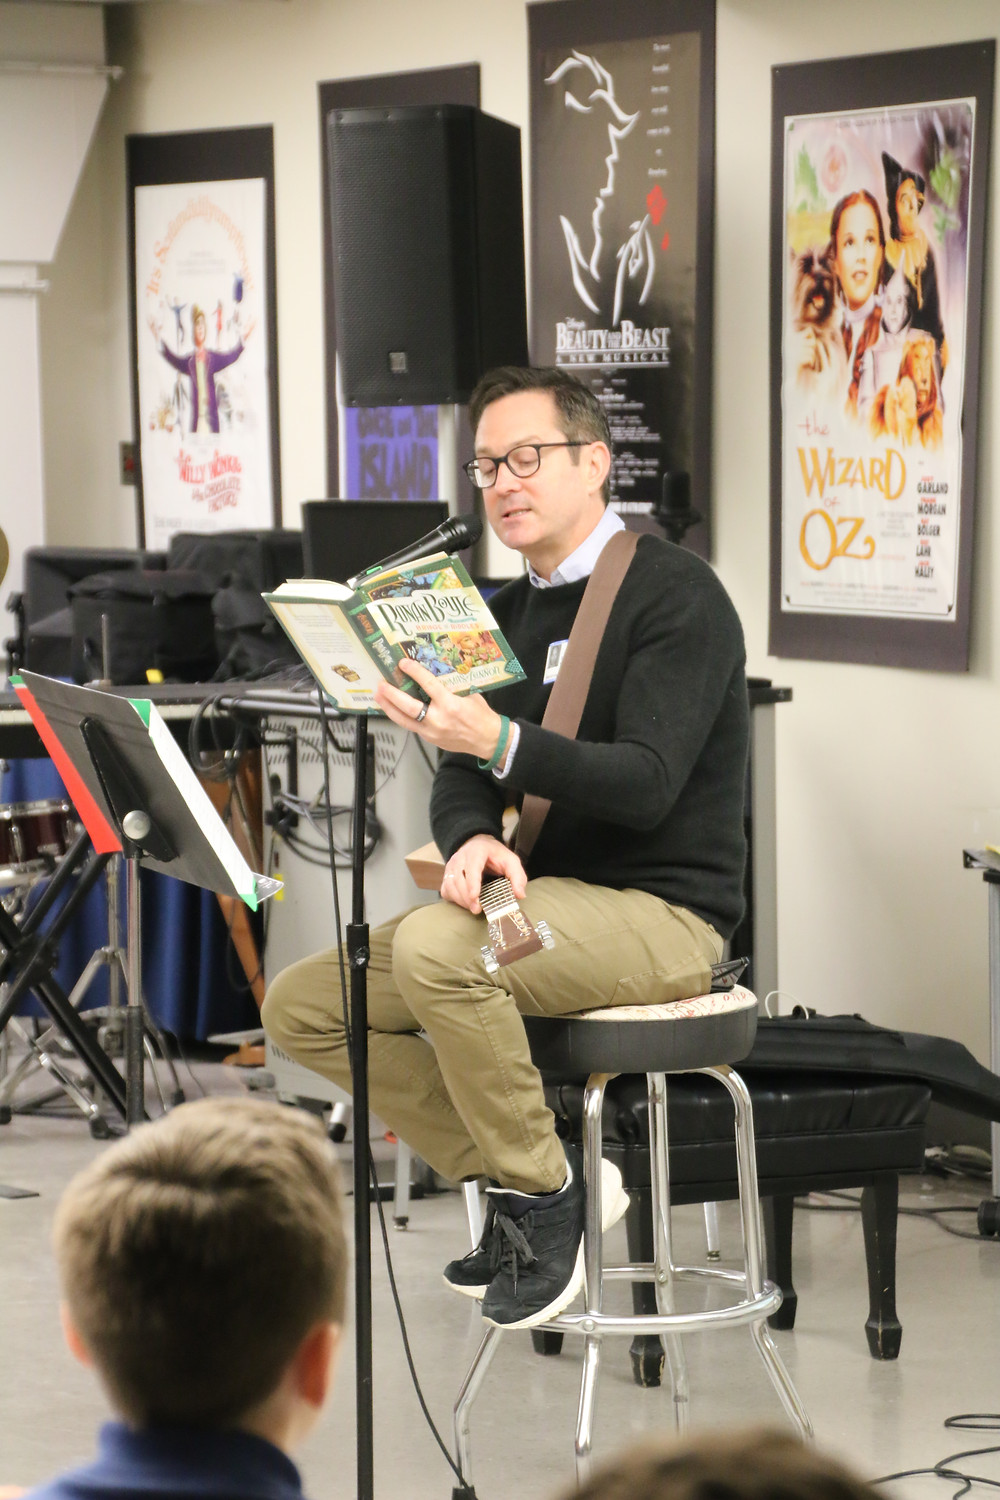 Actor Thomas Lennon reads to WMA student on a book tour.